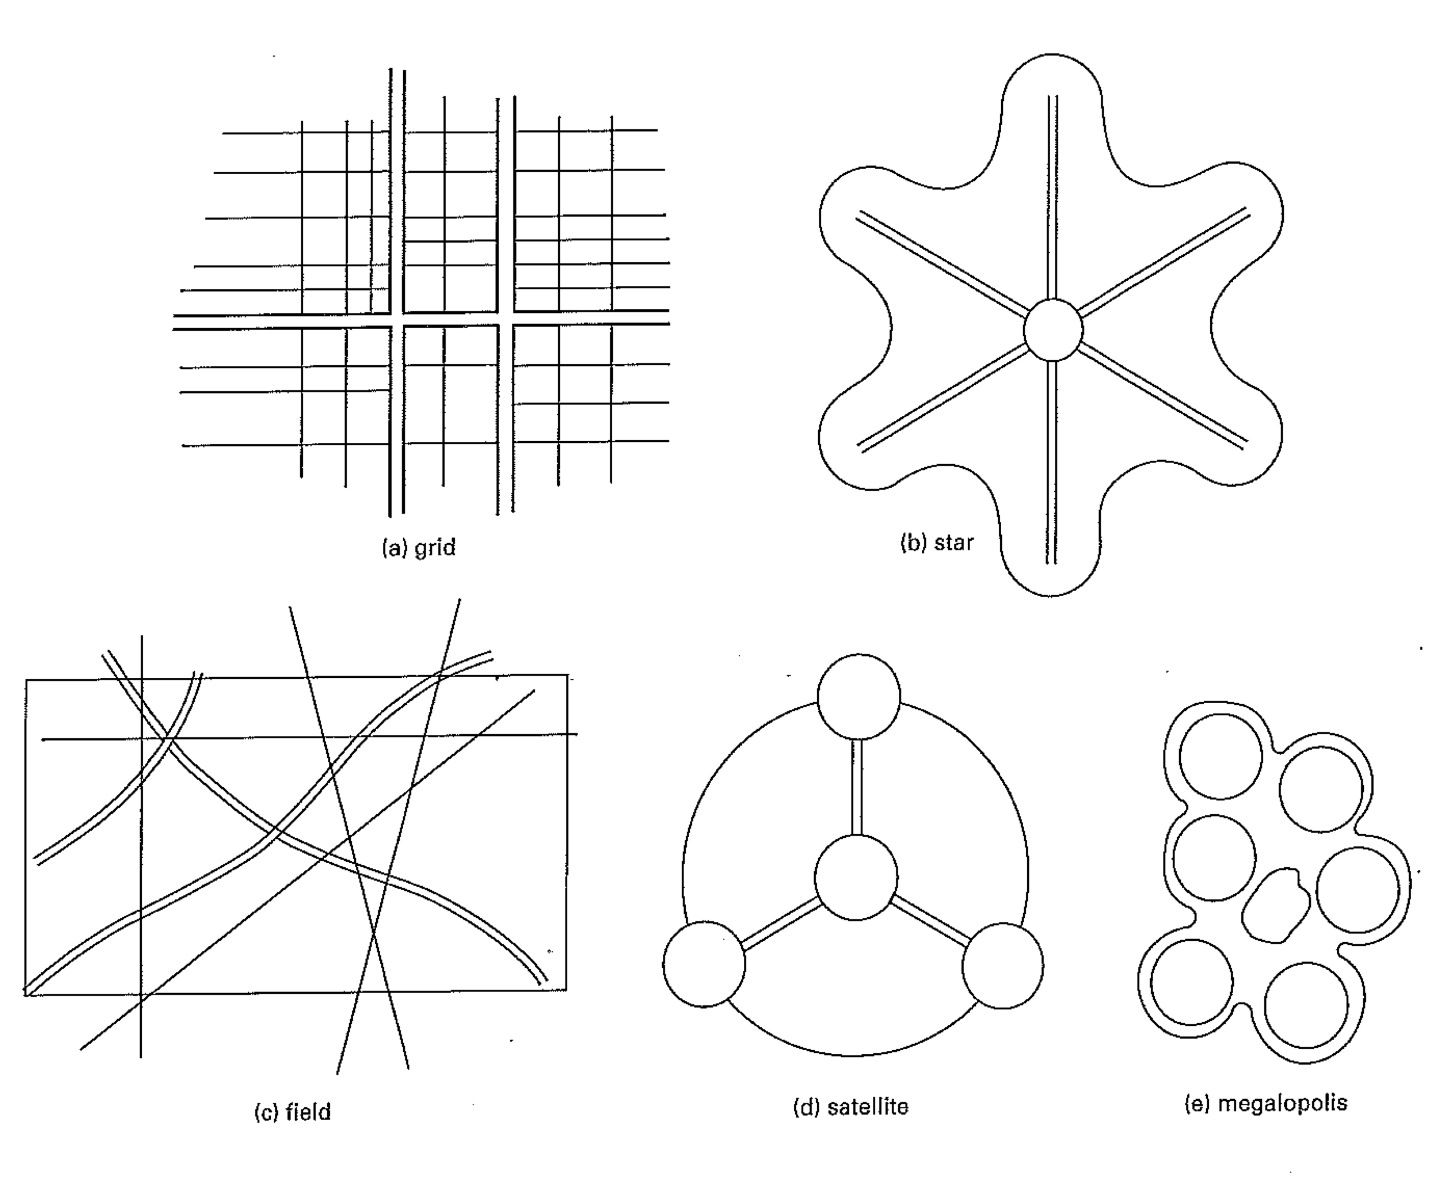 Patterns Of Urban Development With Images